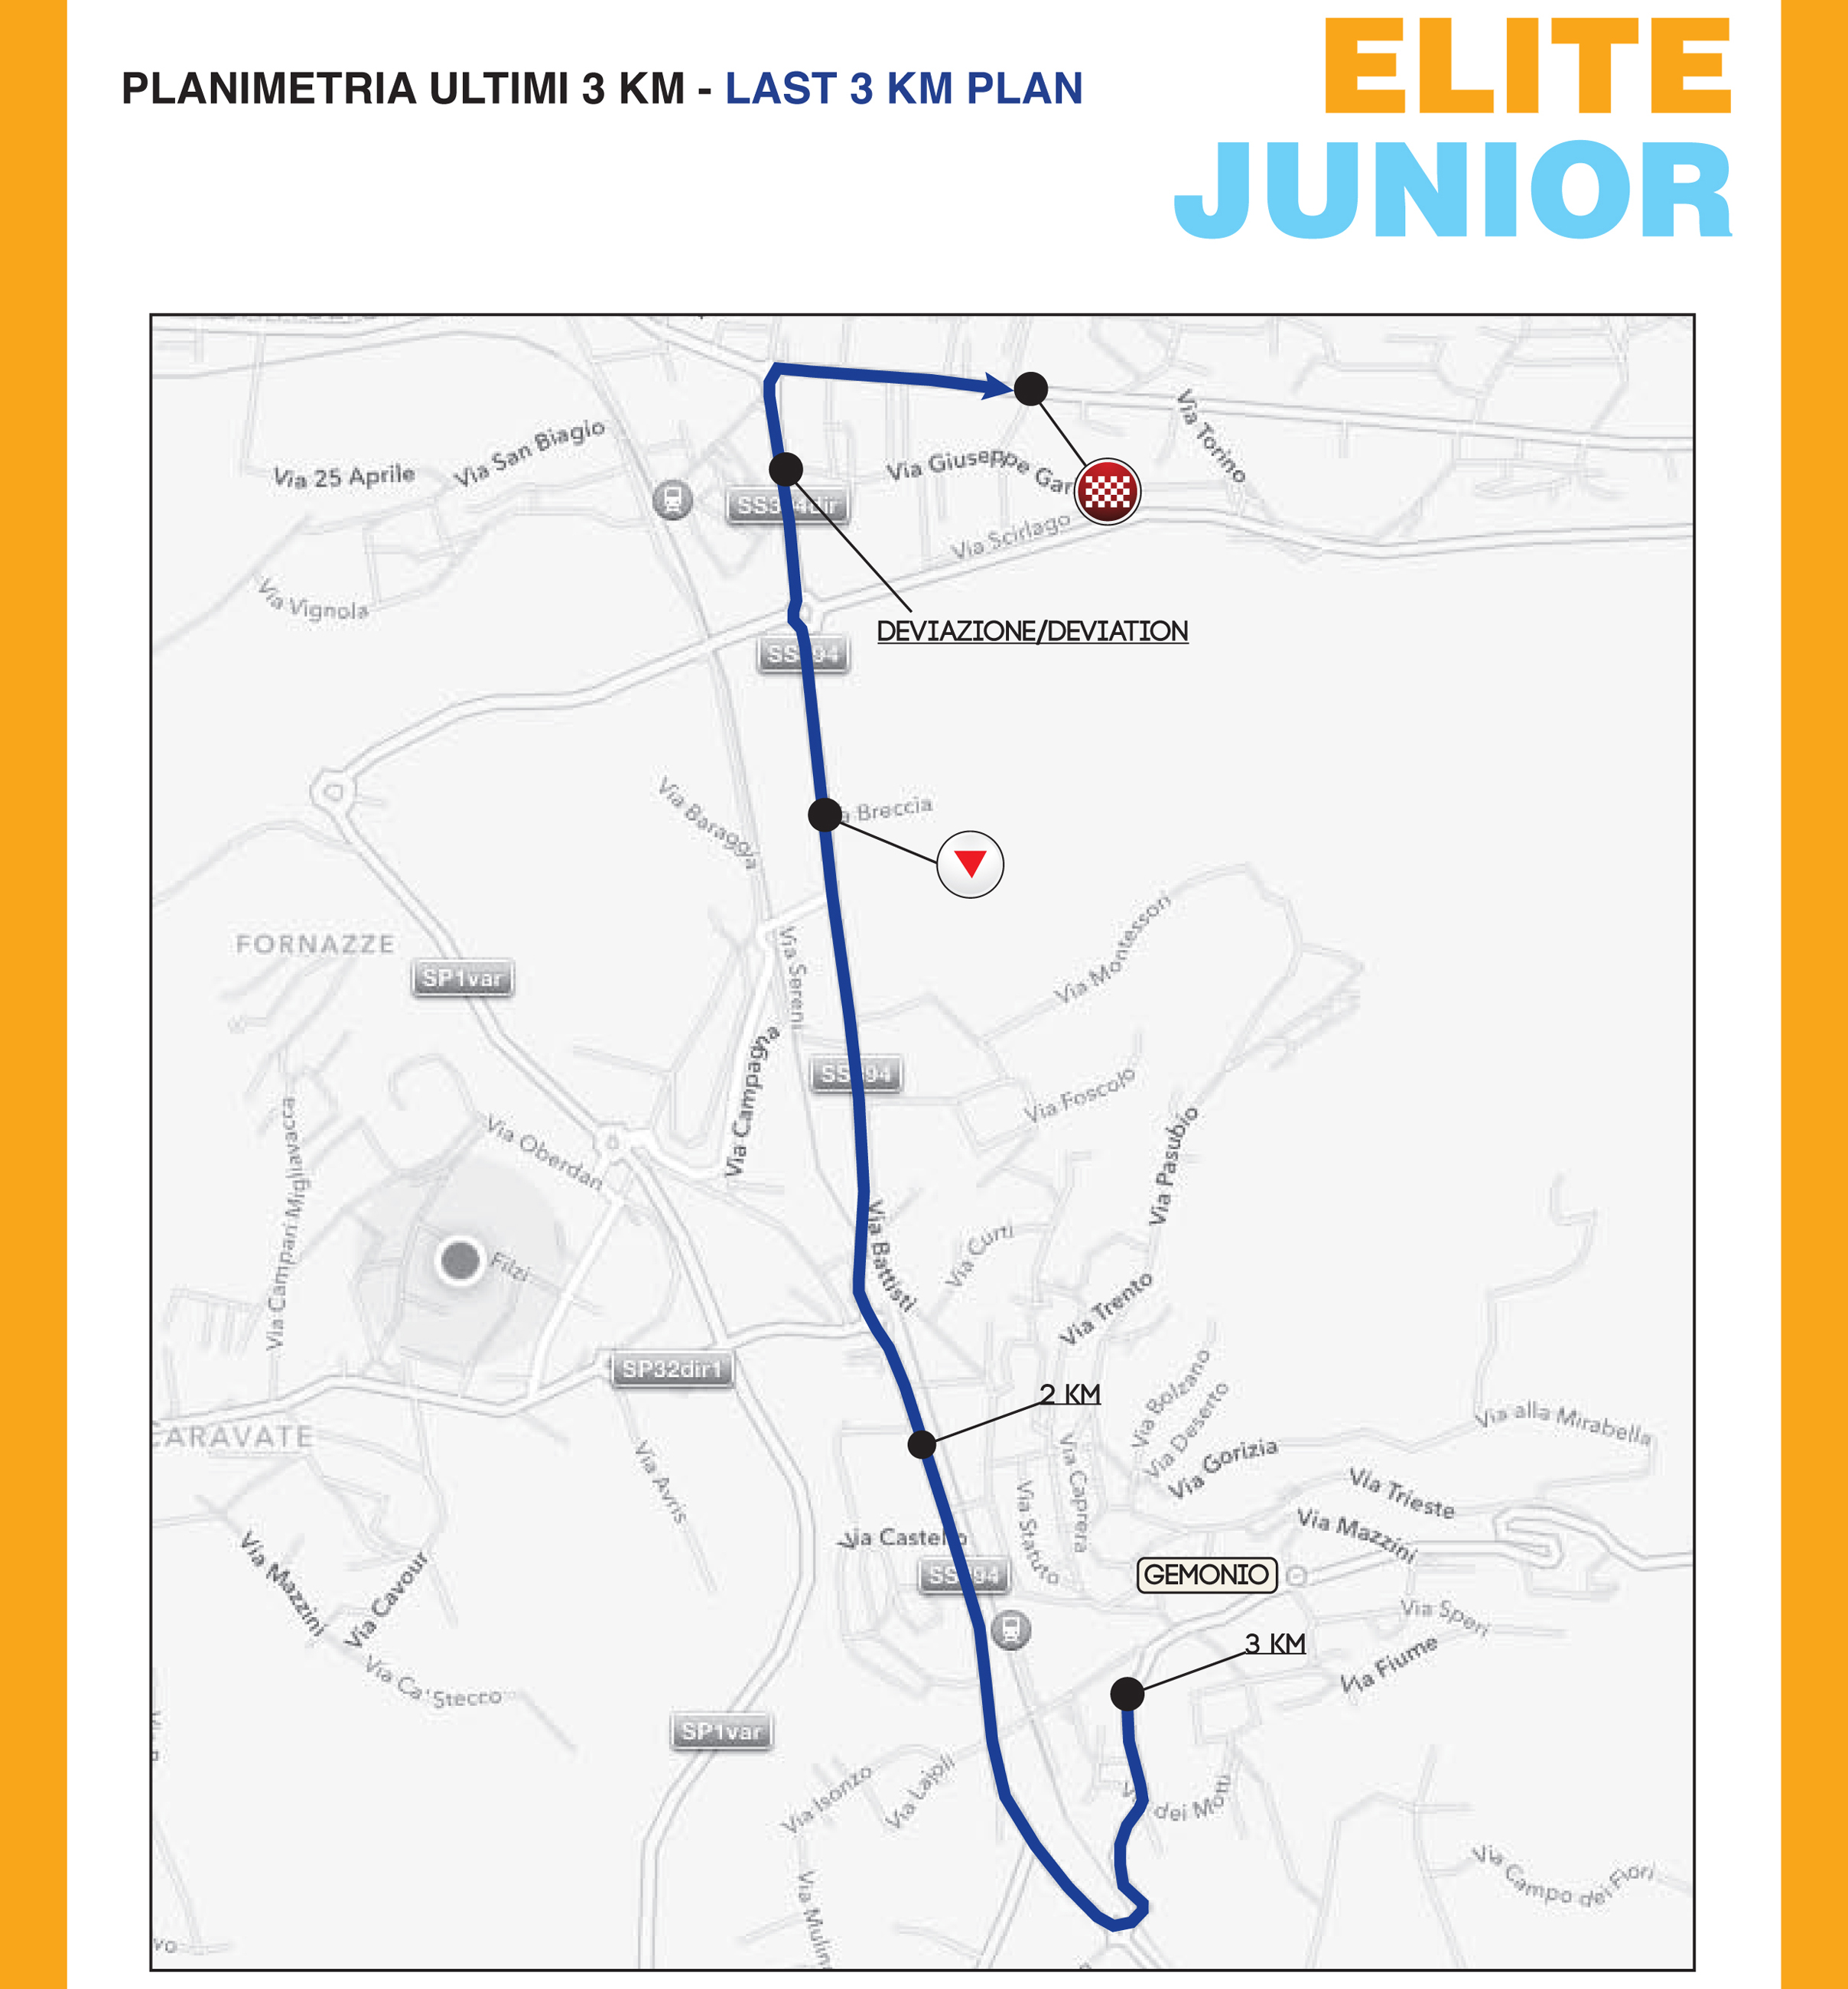 planimetria-3-km-elite-e-junior